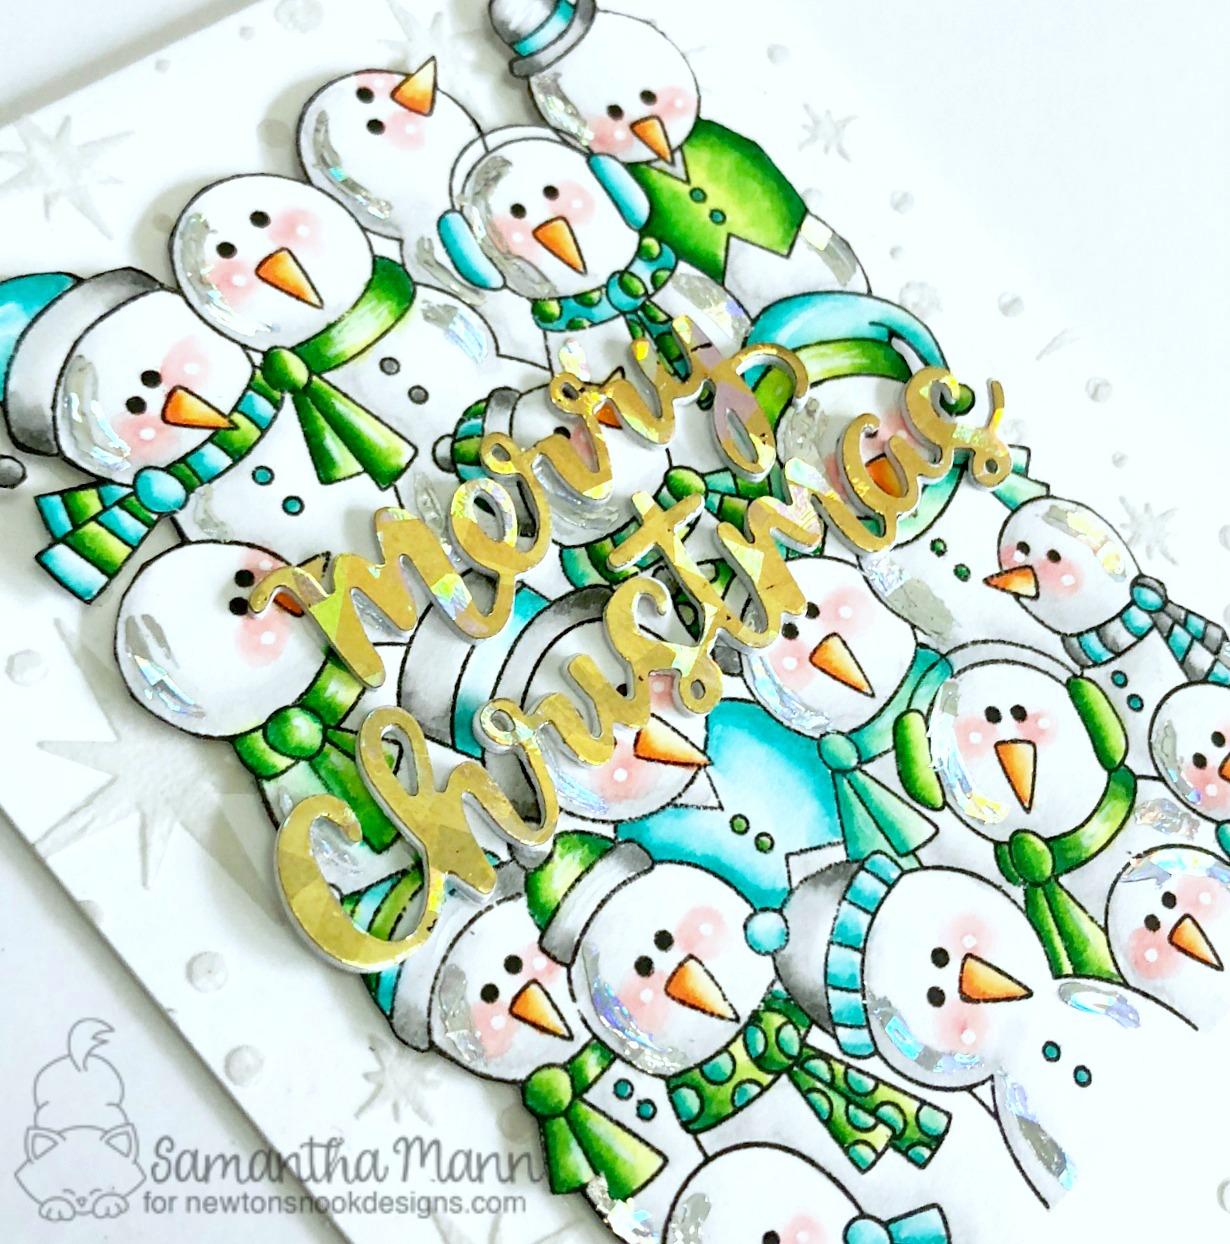 Newton's Nook Designs & Therm O Web Inspiration Week | Sparkly Snowmen Card by Samantha Mann | Frozen Fellowship Stamp Set, Holiday Greetings Die Set and Starfield Stencil by Newton's Nook Designs | Foils by Therm O Web #newtonsnook #thermoweb